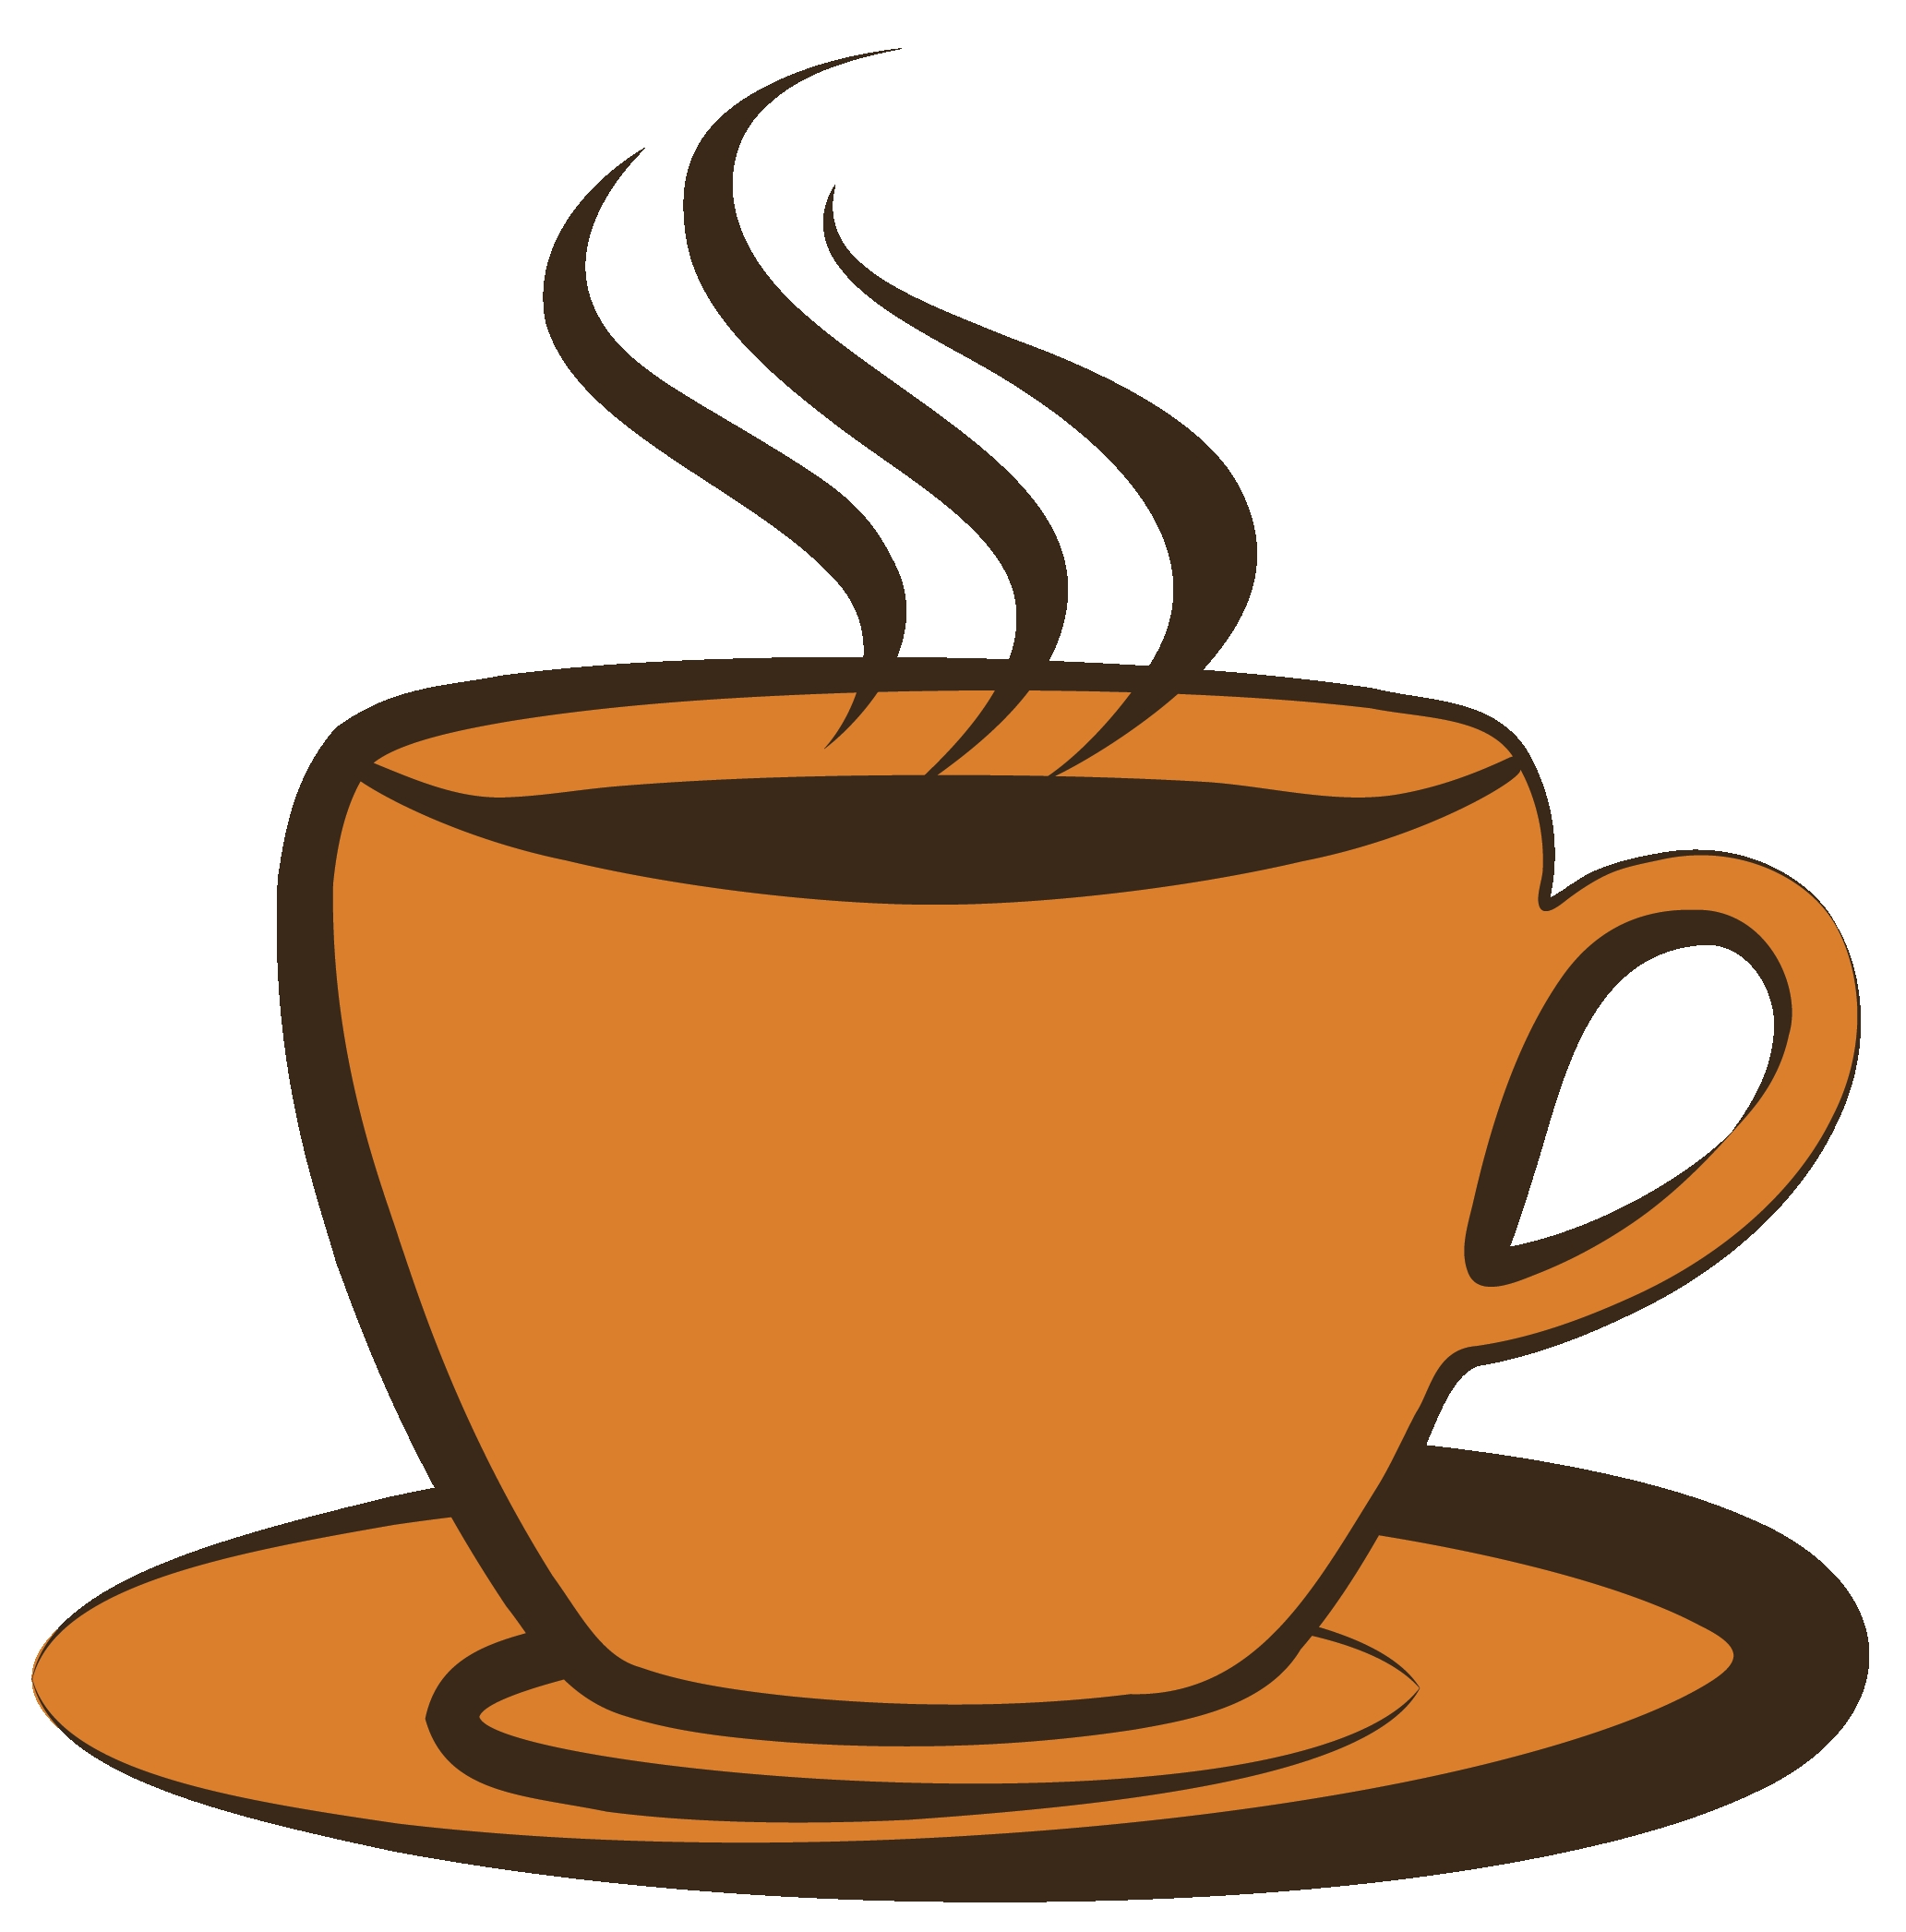 coffee clipart at getdrawings com free for personal use coffee rh getdrawings com coffee clip art black and white coffee clipart png